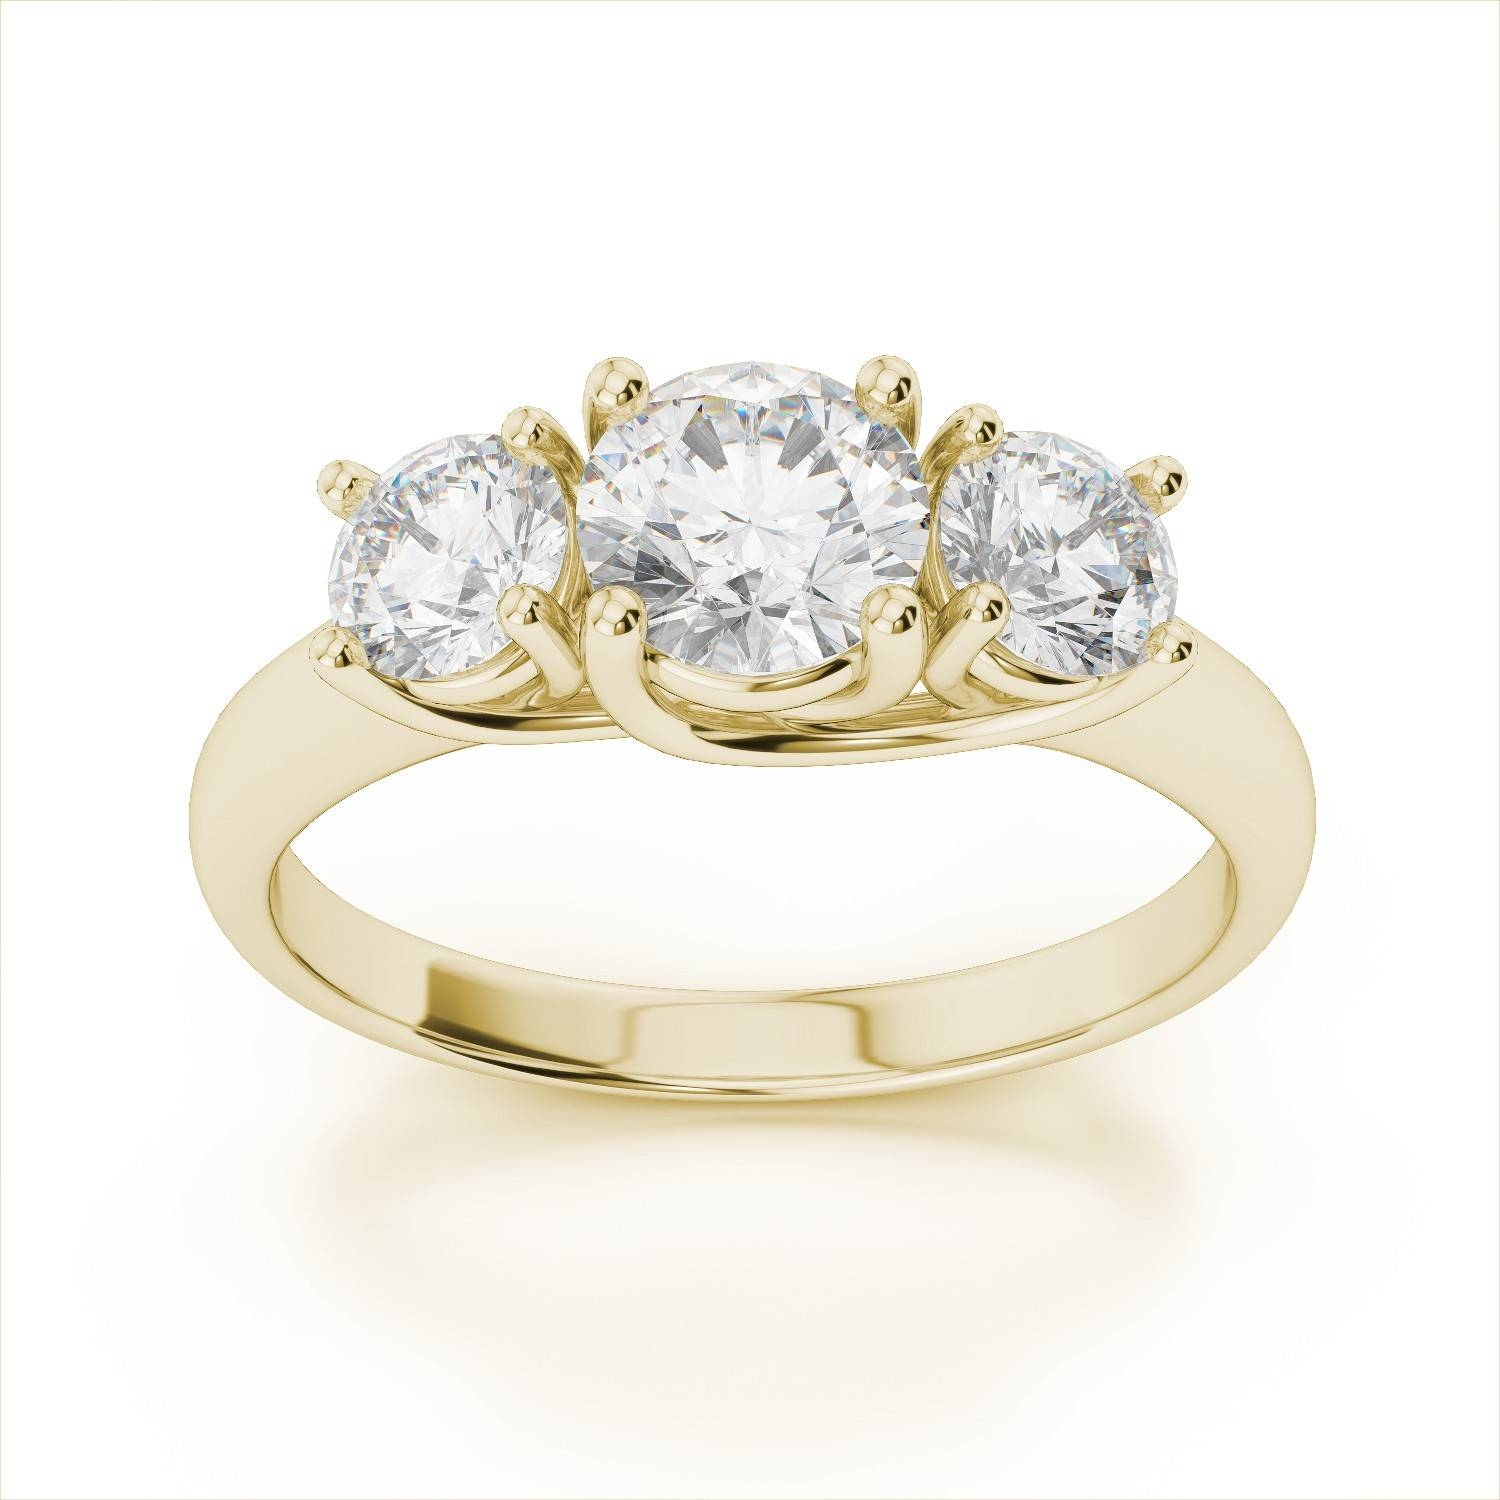 3 Stone Diamond Trellis Engagement Ring In 14K Yellow Gold Throughout Engagement Rings With Yellow Stone (View 2 of 15)